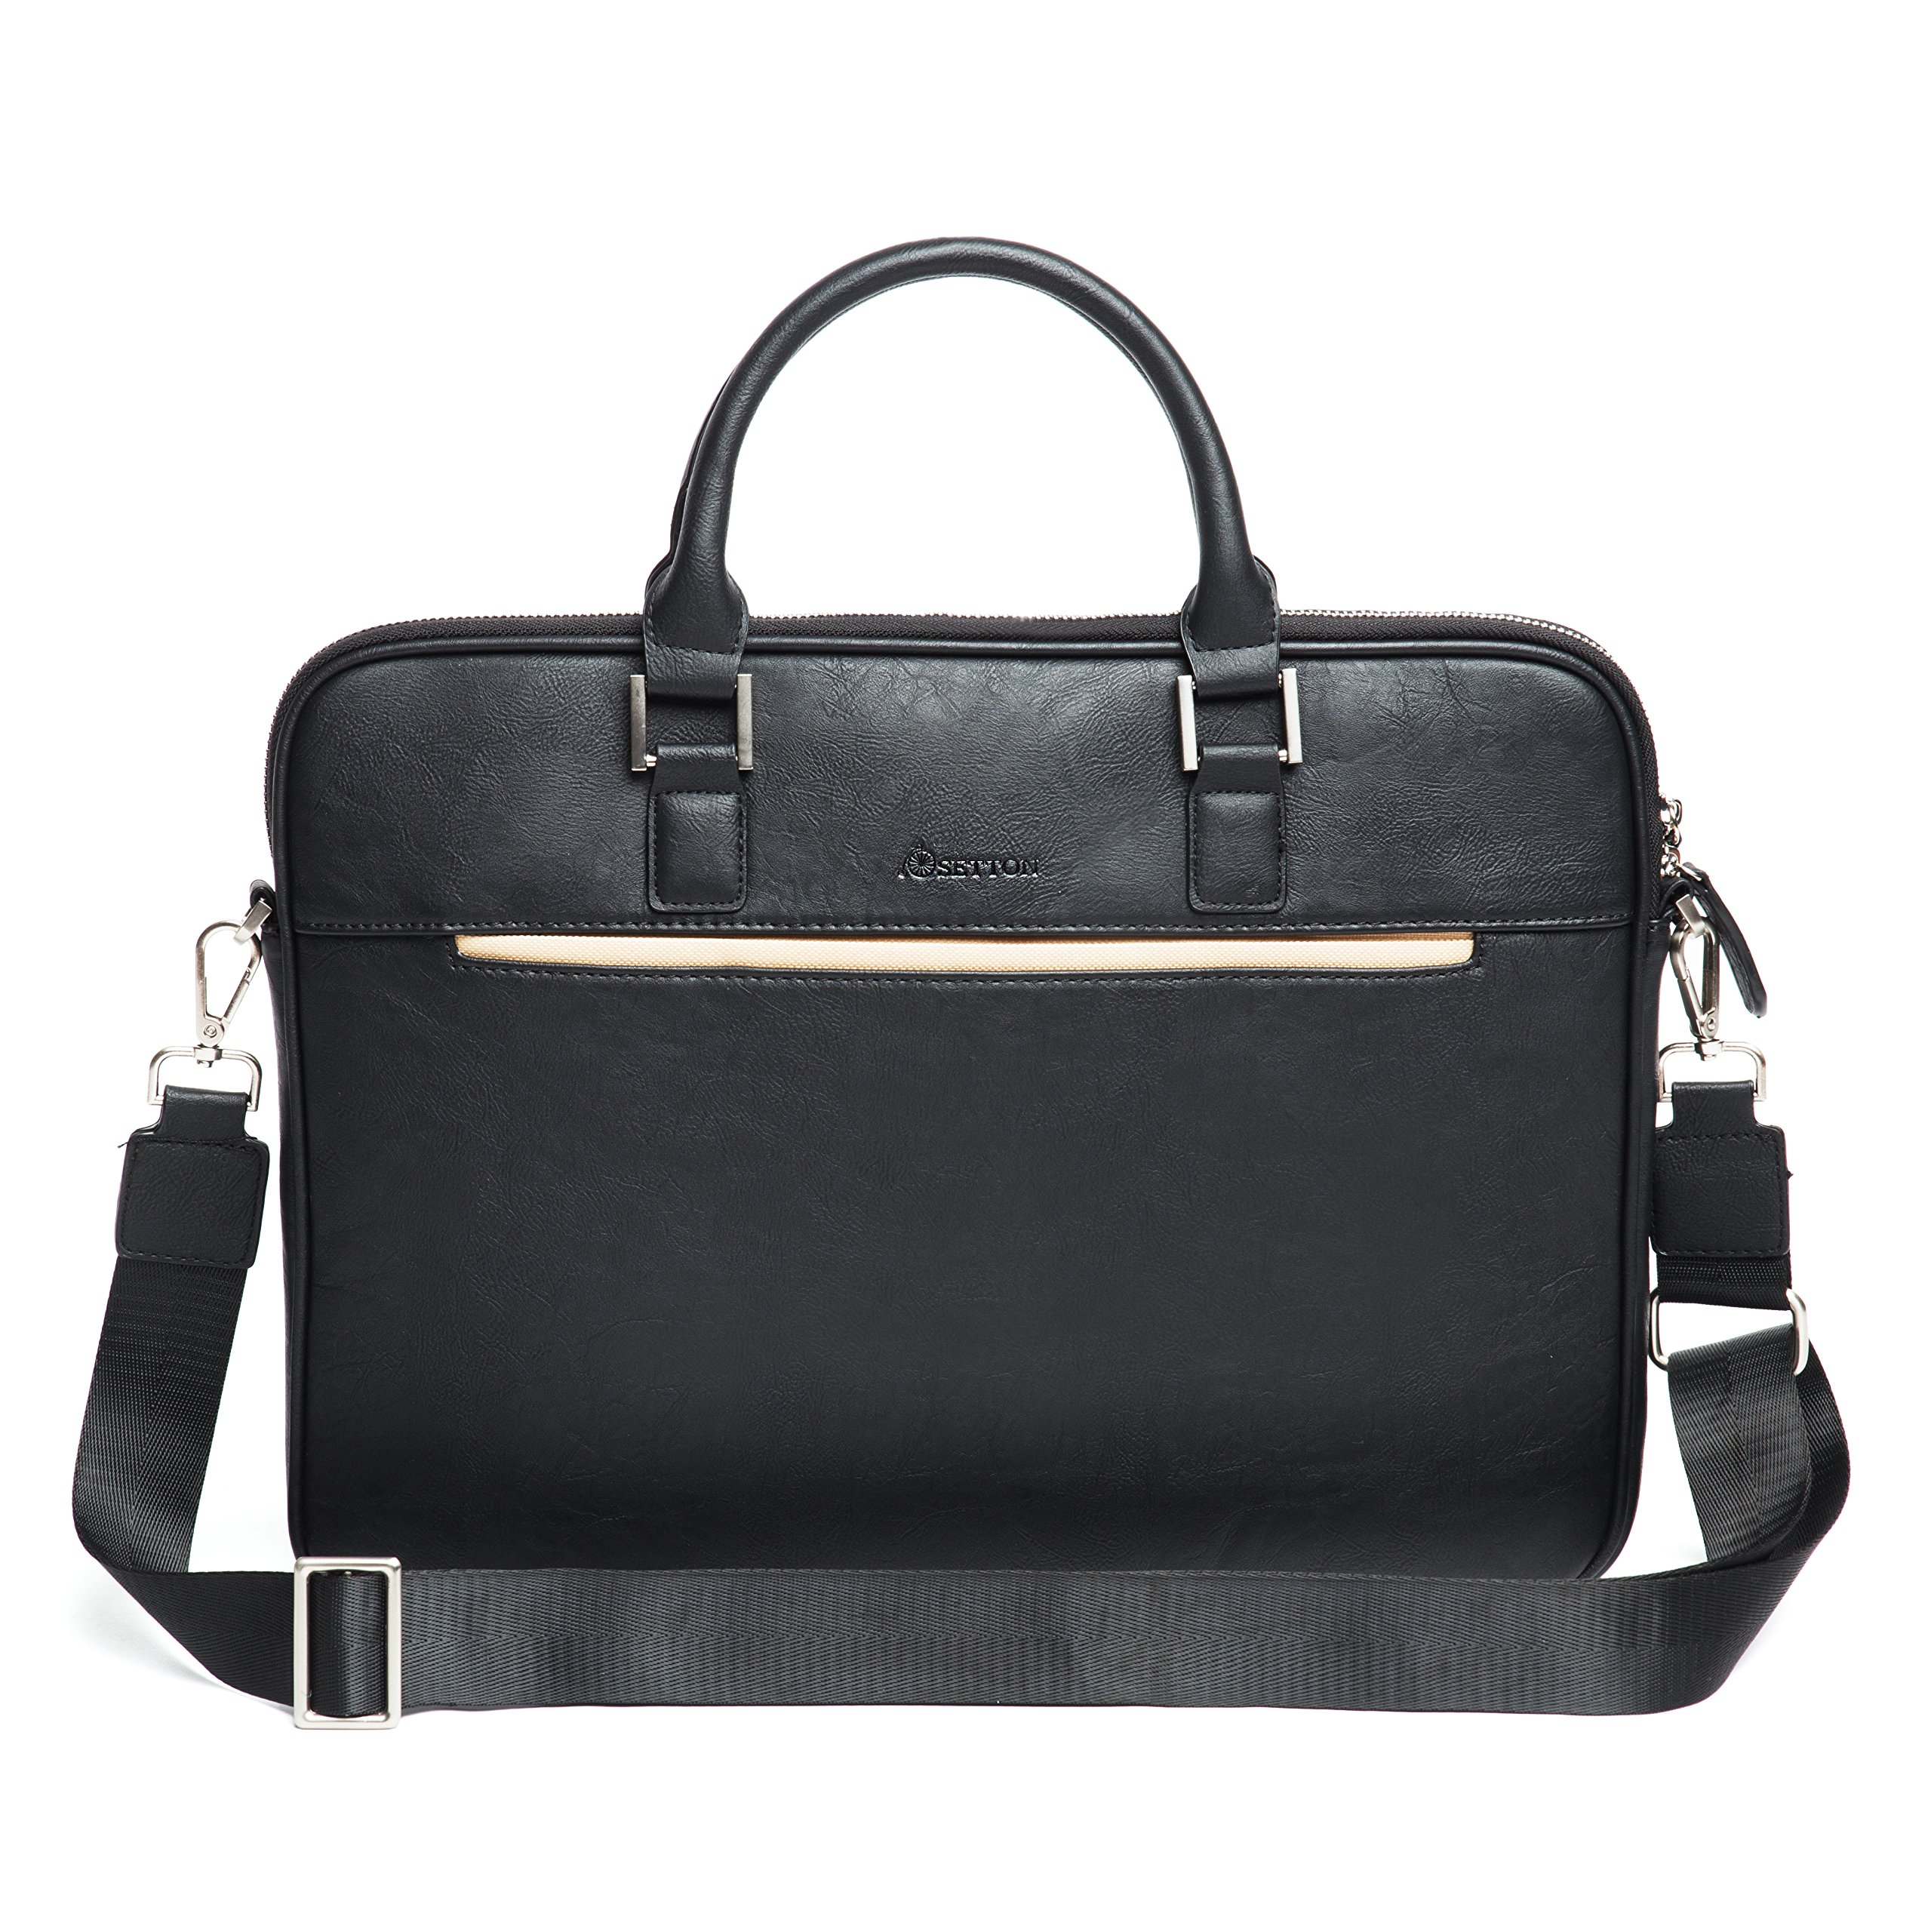 """Laptop Bag Briefcase Business Shoulder-Messenger - 13.3 Inch Slim Case, Travel for up 13"""" Computer - Notebook/ MacBook Air - Pro / iPad Pro 12.9/ Dell xps 13/ Tablet For Men by SettonBrothers -Black"""